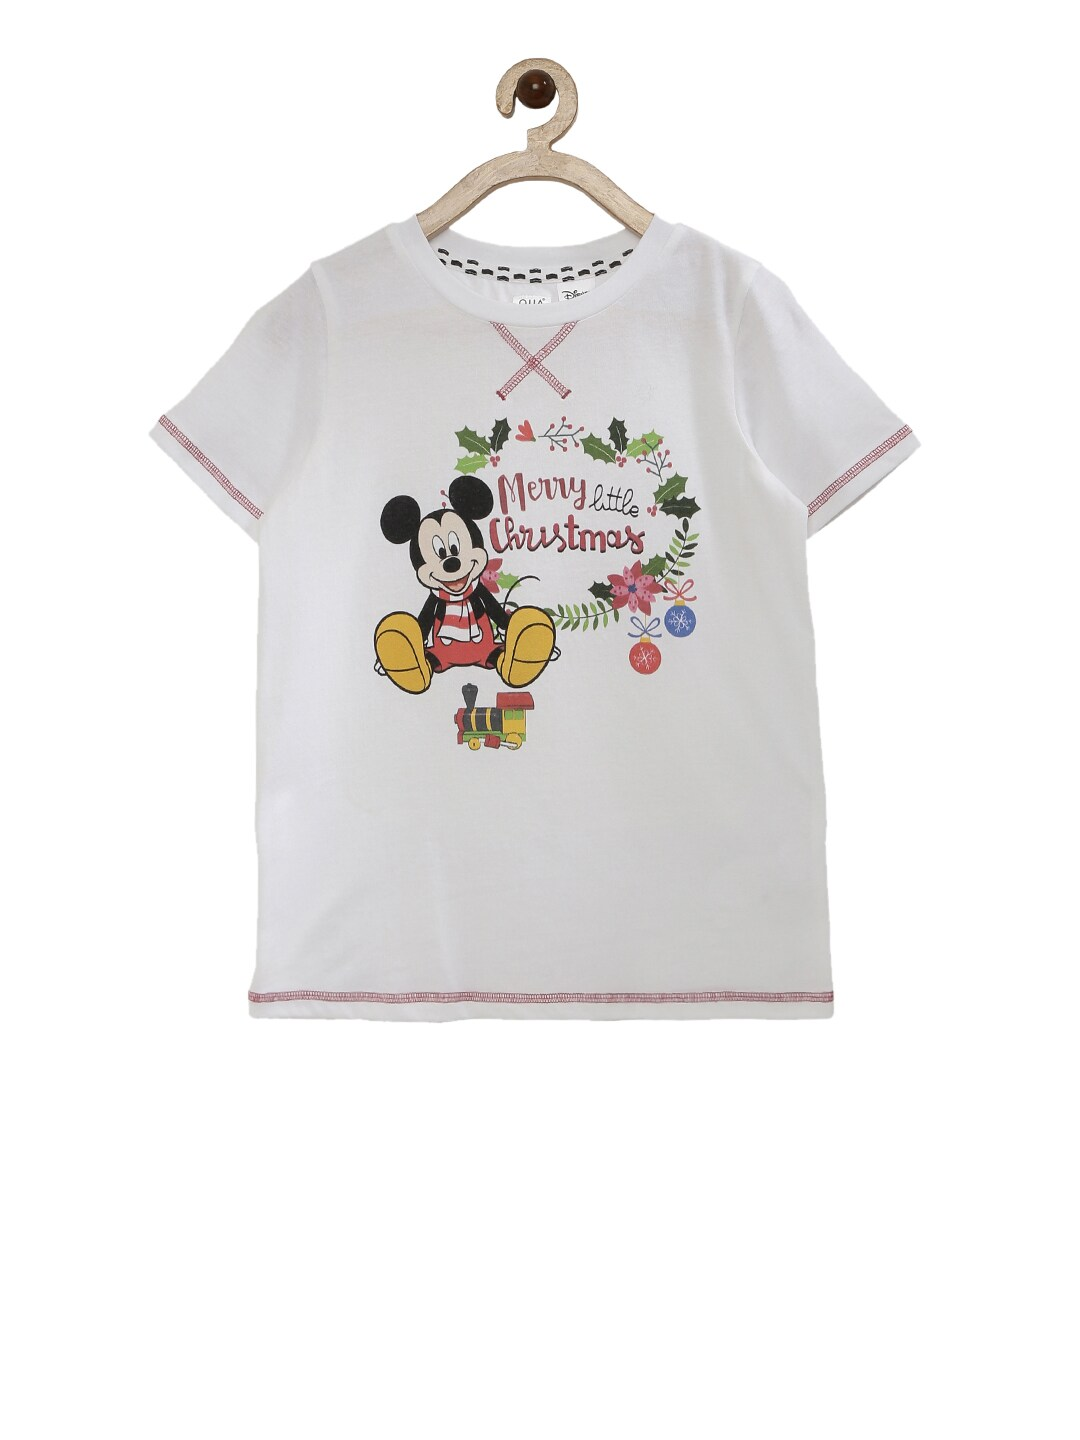 463f3f4a3 Mickey Mouse Tshirts - Buy Mickey Mouse Tshirts Online in India